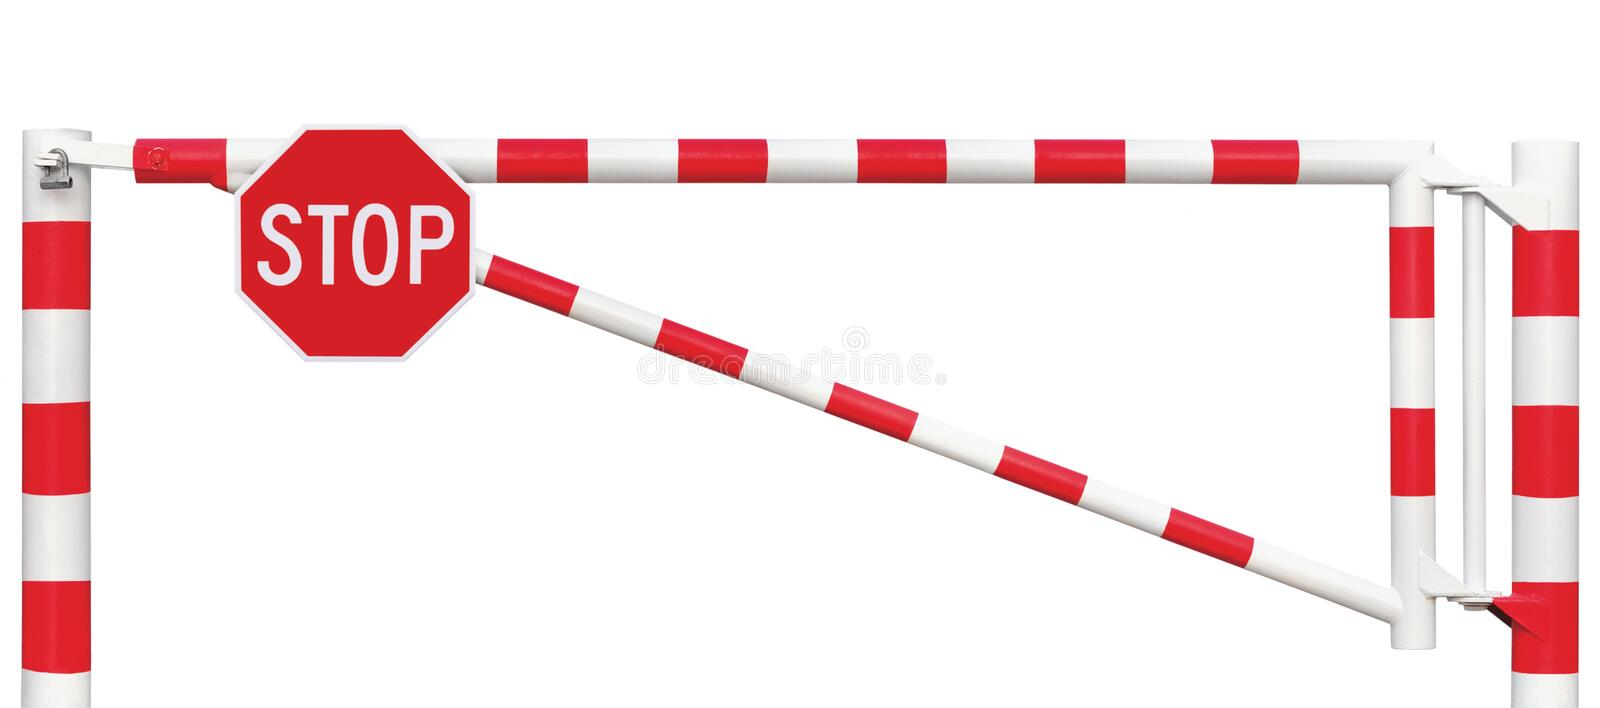 Gated Road Barrier Closeup, Octagonal Stop Sign, Roadway Gate Bar In Bright White And Red, Traffic Entry Stop Block Security Point. Gated Road Barrier Closeup royalty free stock images